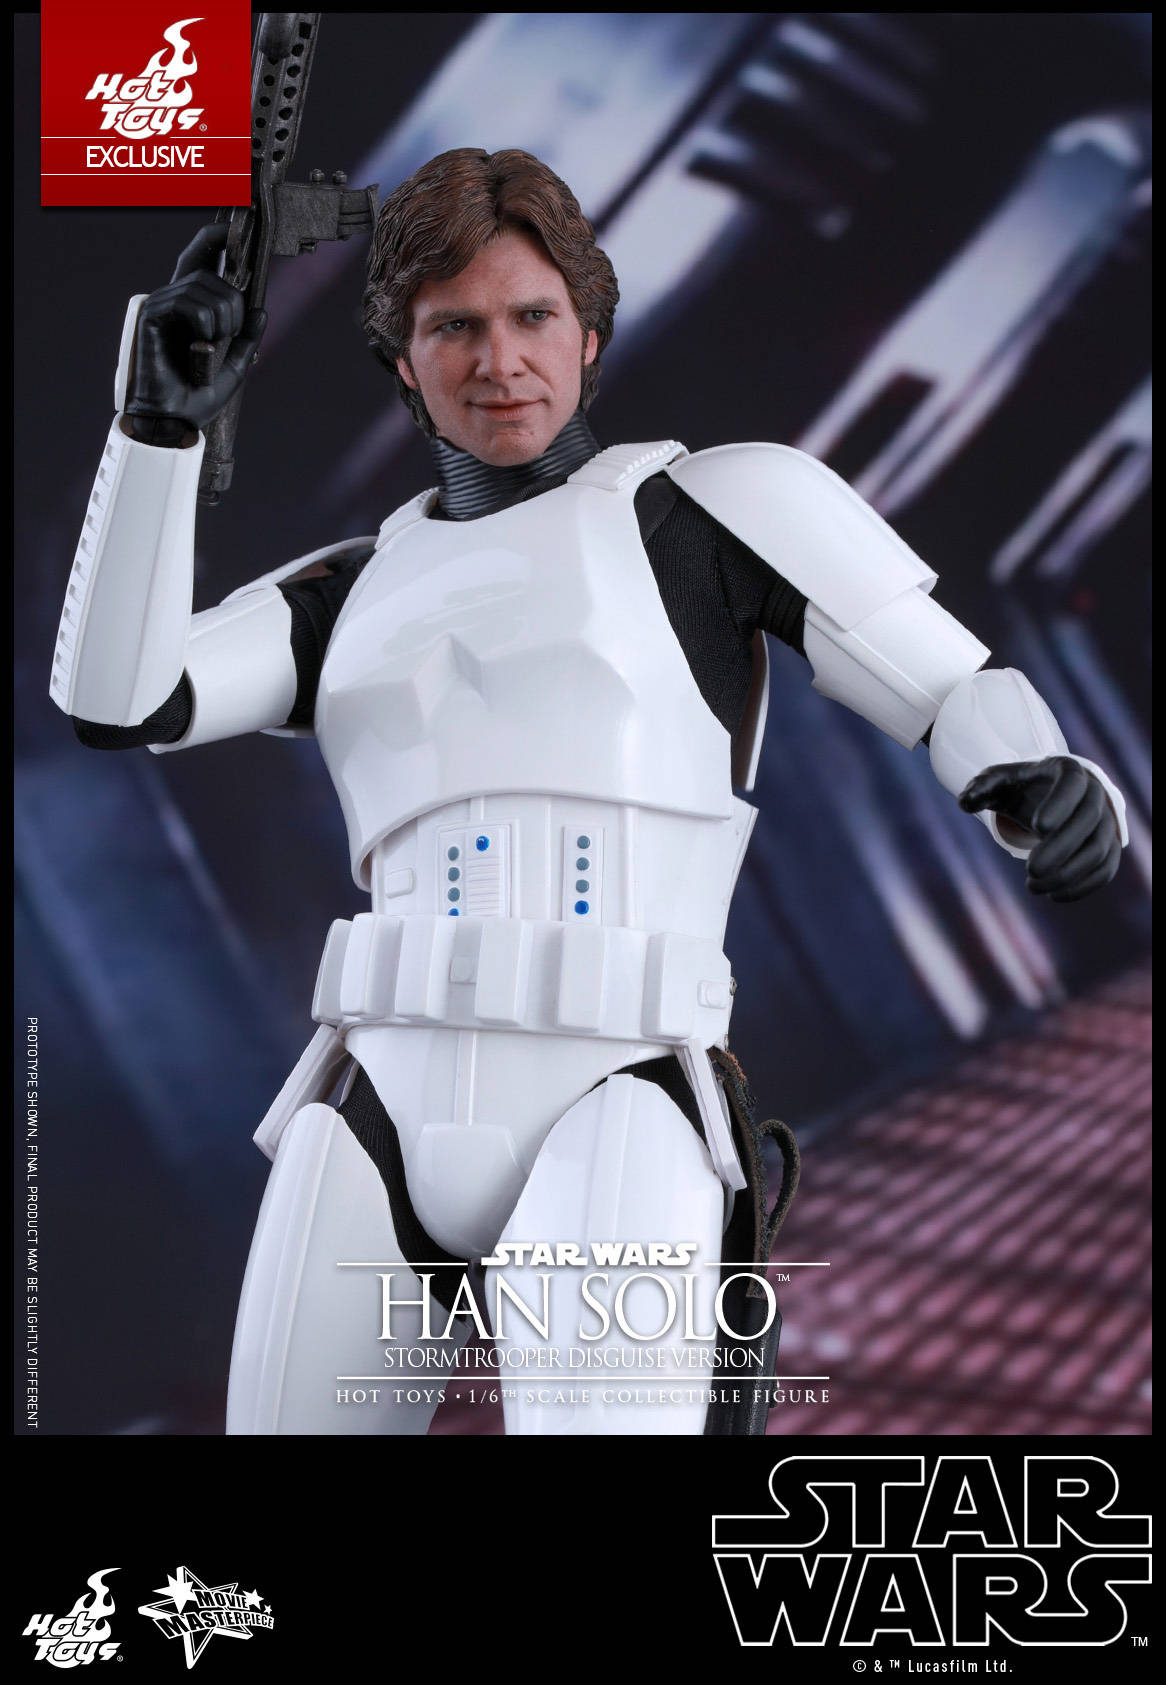 Hot-Toys---Star-Wars---Han-Solo-(Stormtrooper-Disguise-Version)-Collectible-Figure PR7